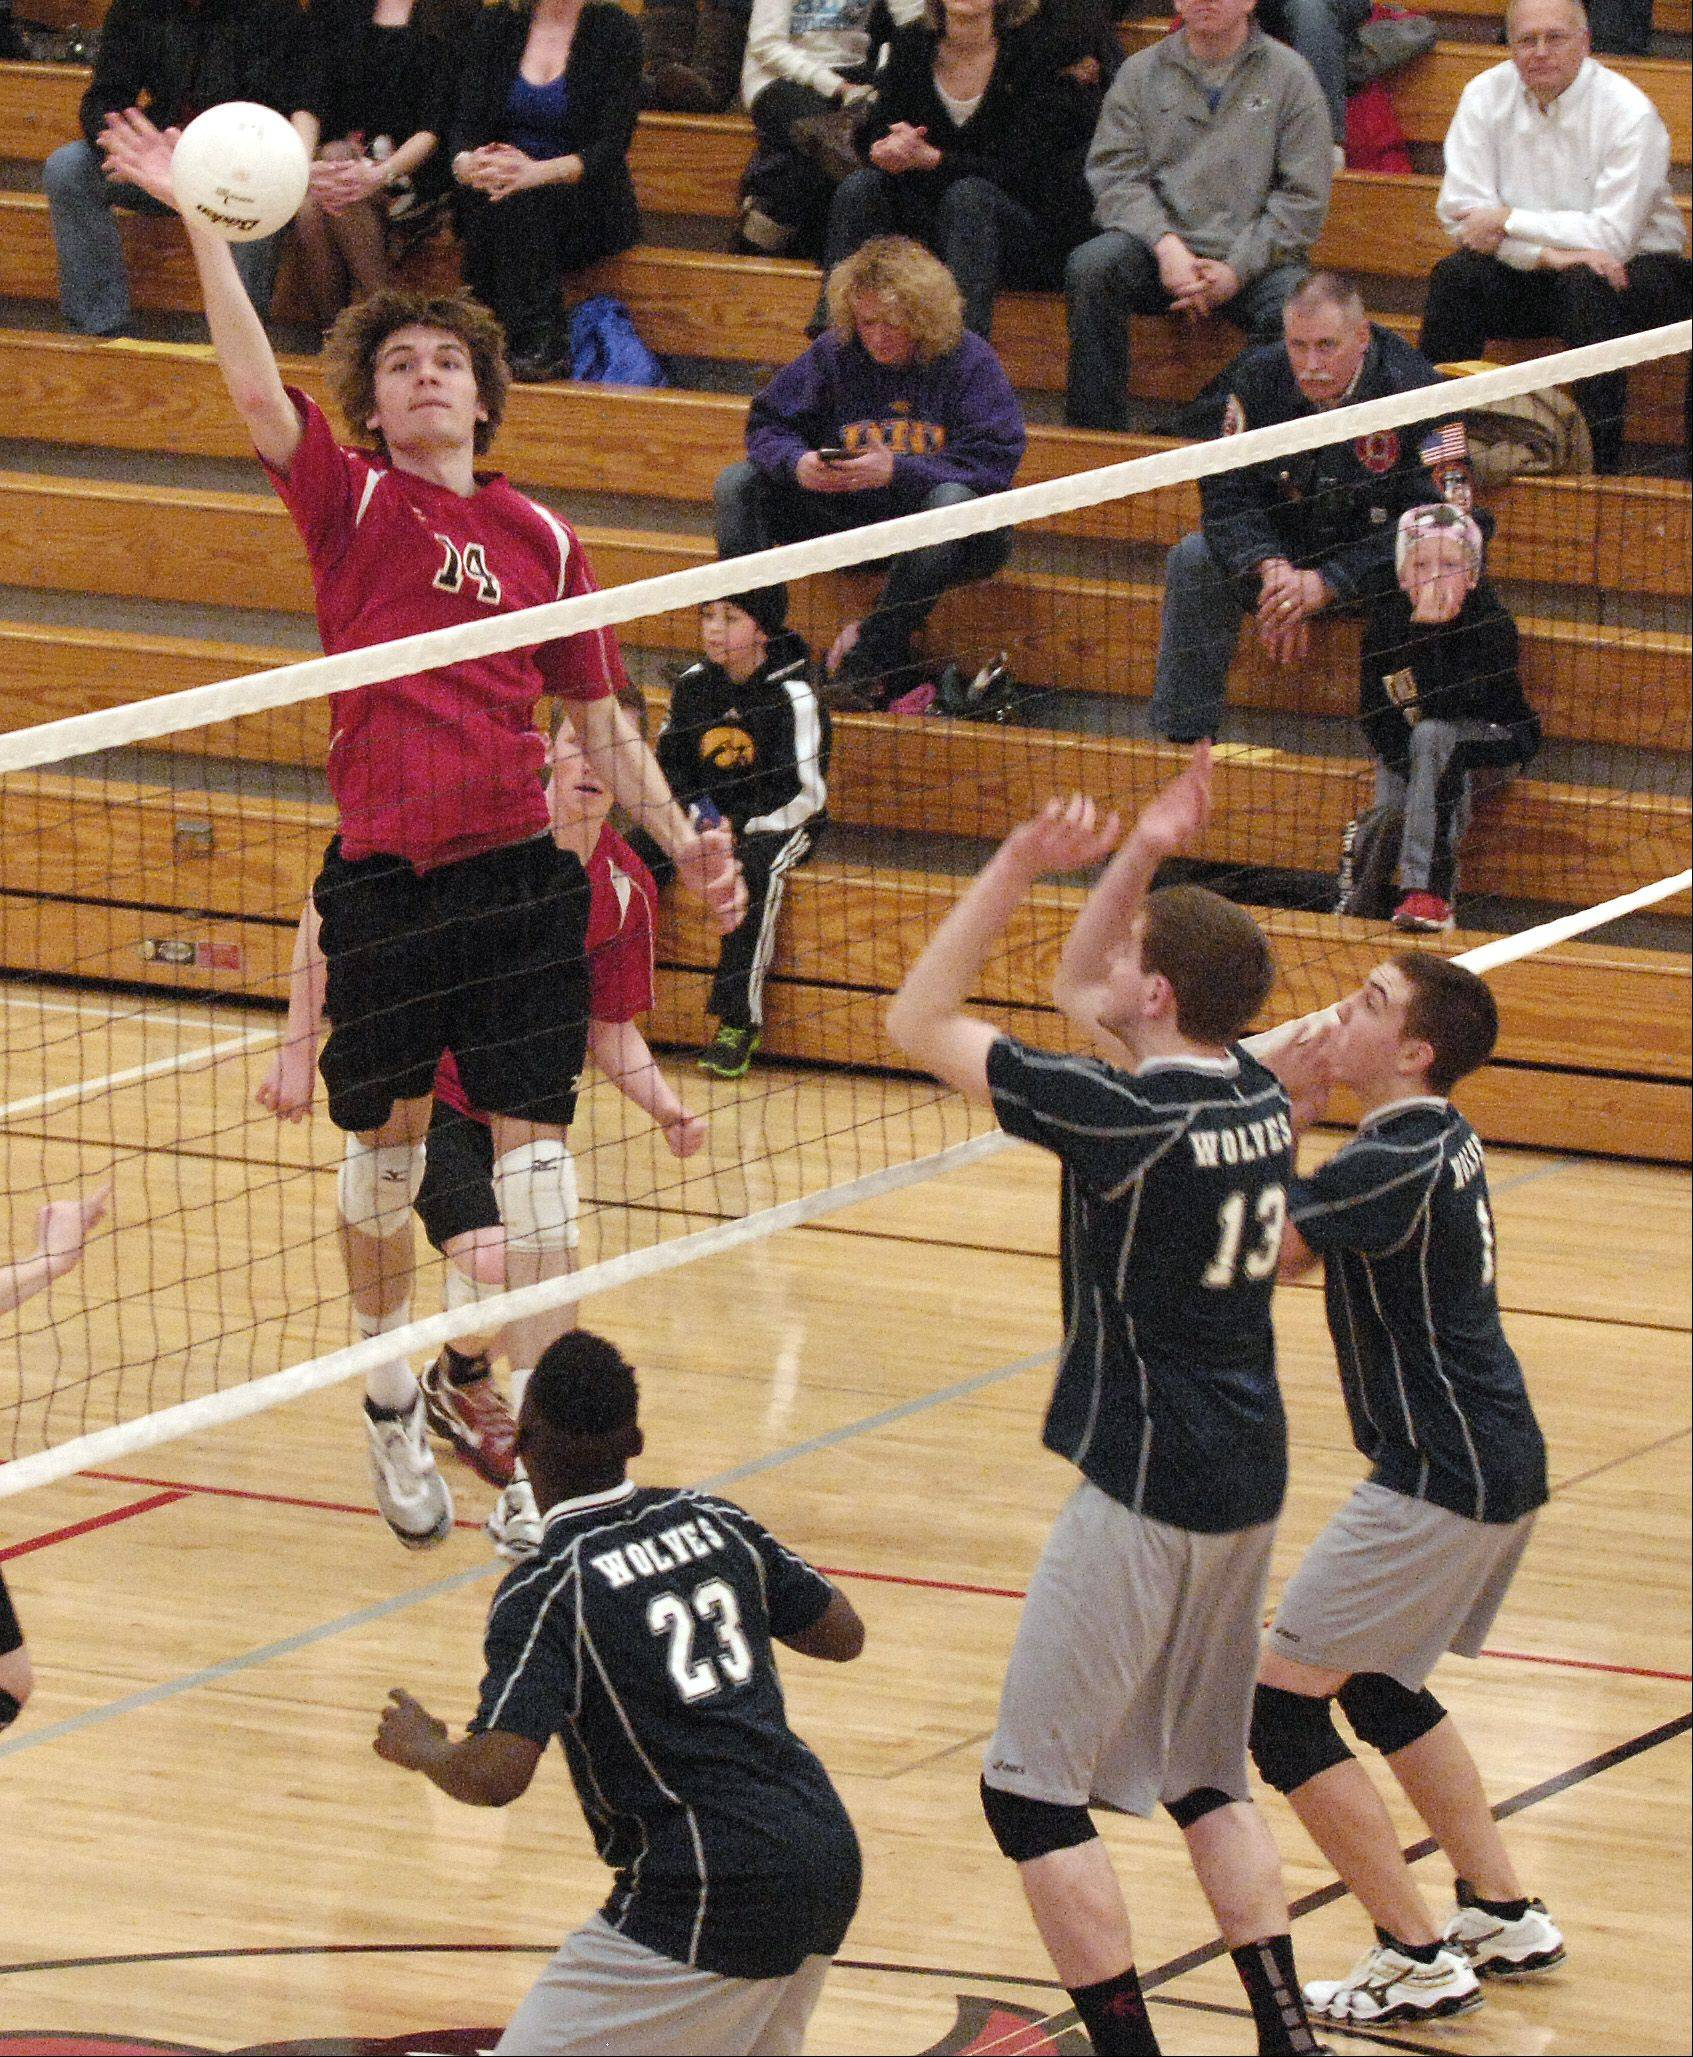 Garrett Metzger of Benet Academy fires one past Oswego East during thier win during boys varsity volleyball, Wednesday at home.